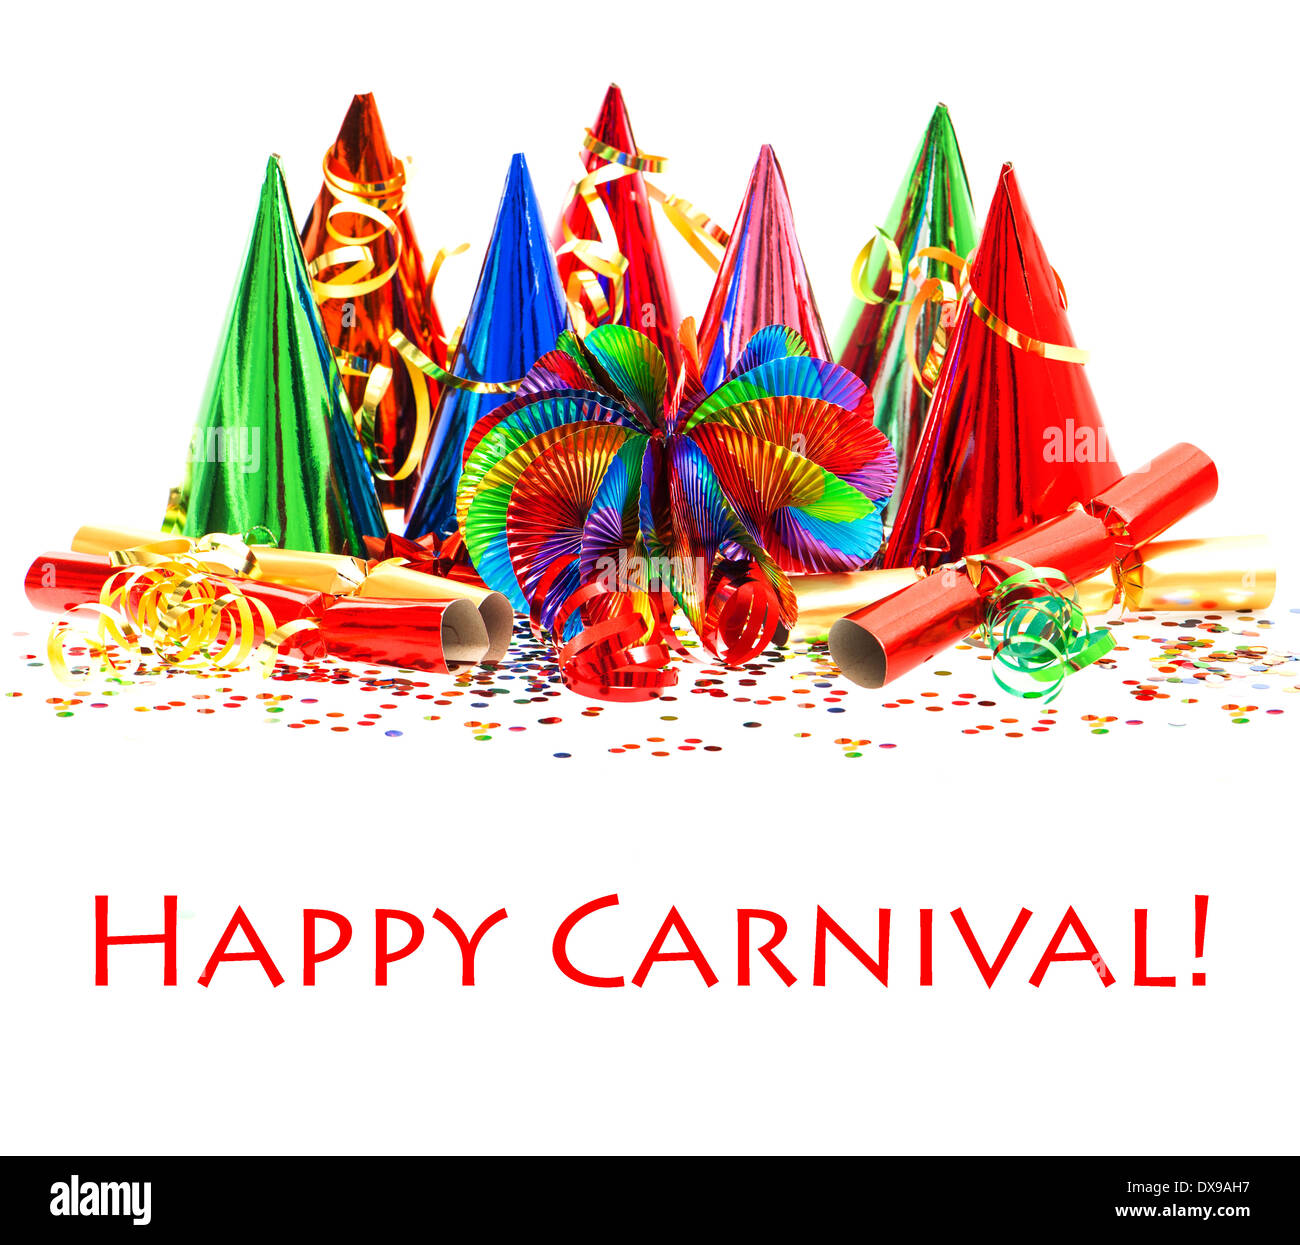 Festive Carnival Party Decoration Background With Colorful Garlands Streamer Hats And Confetti Over White Sample Text